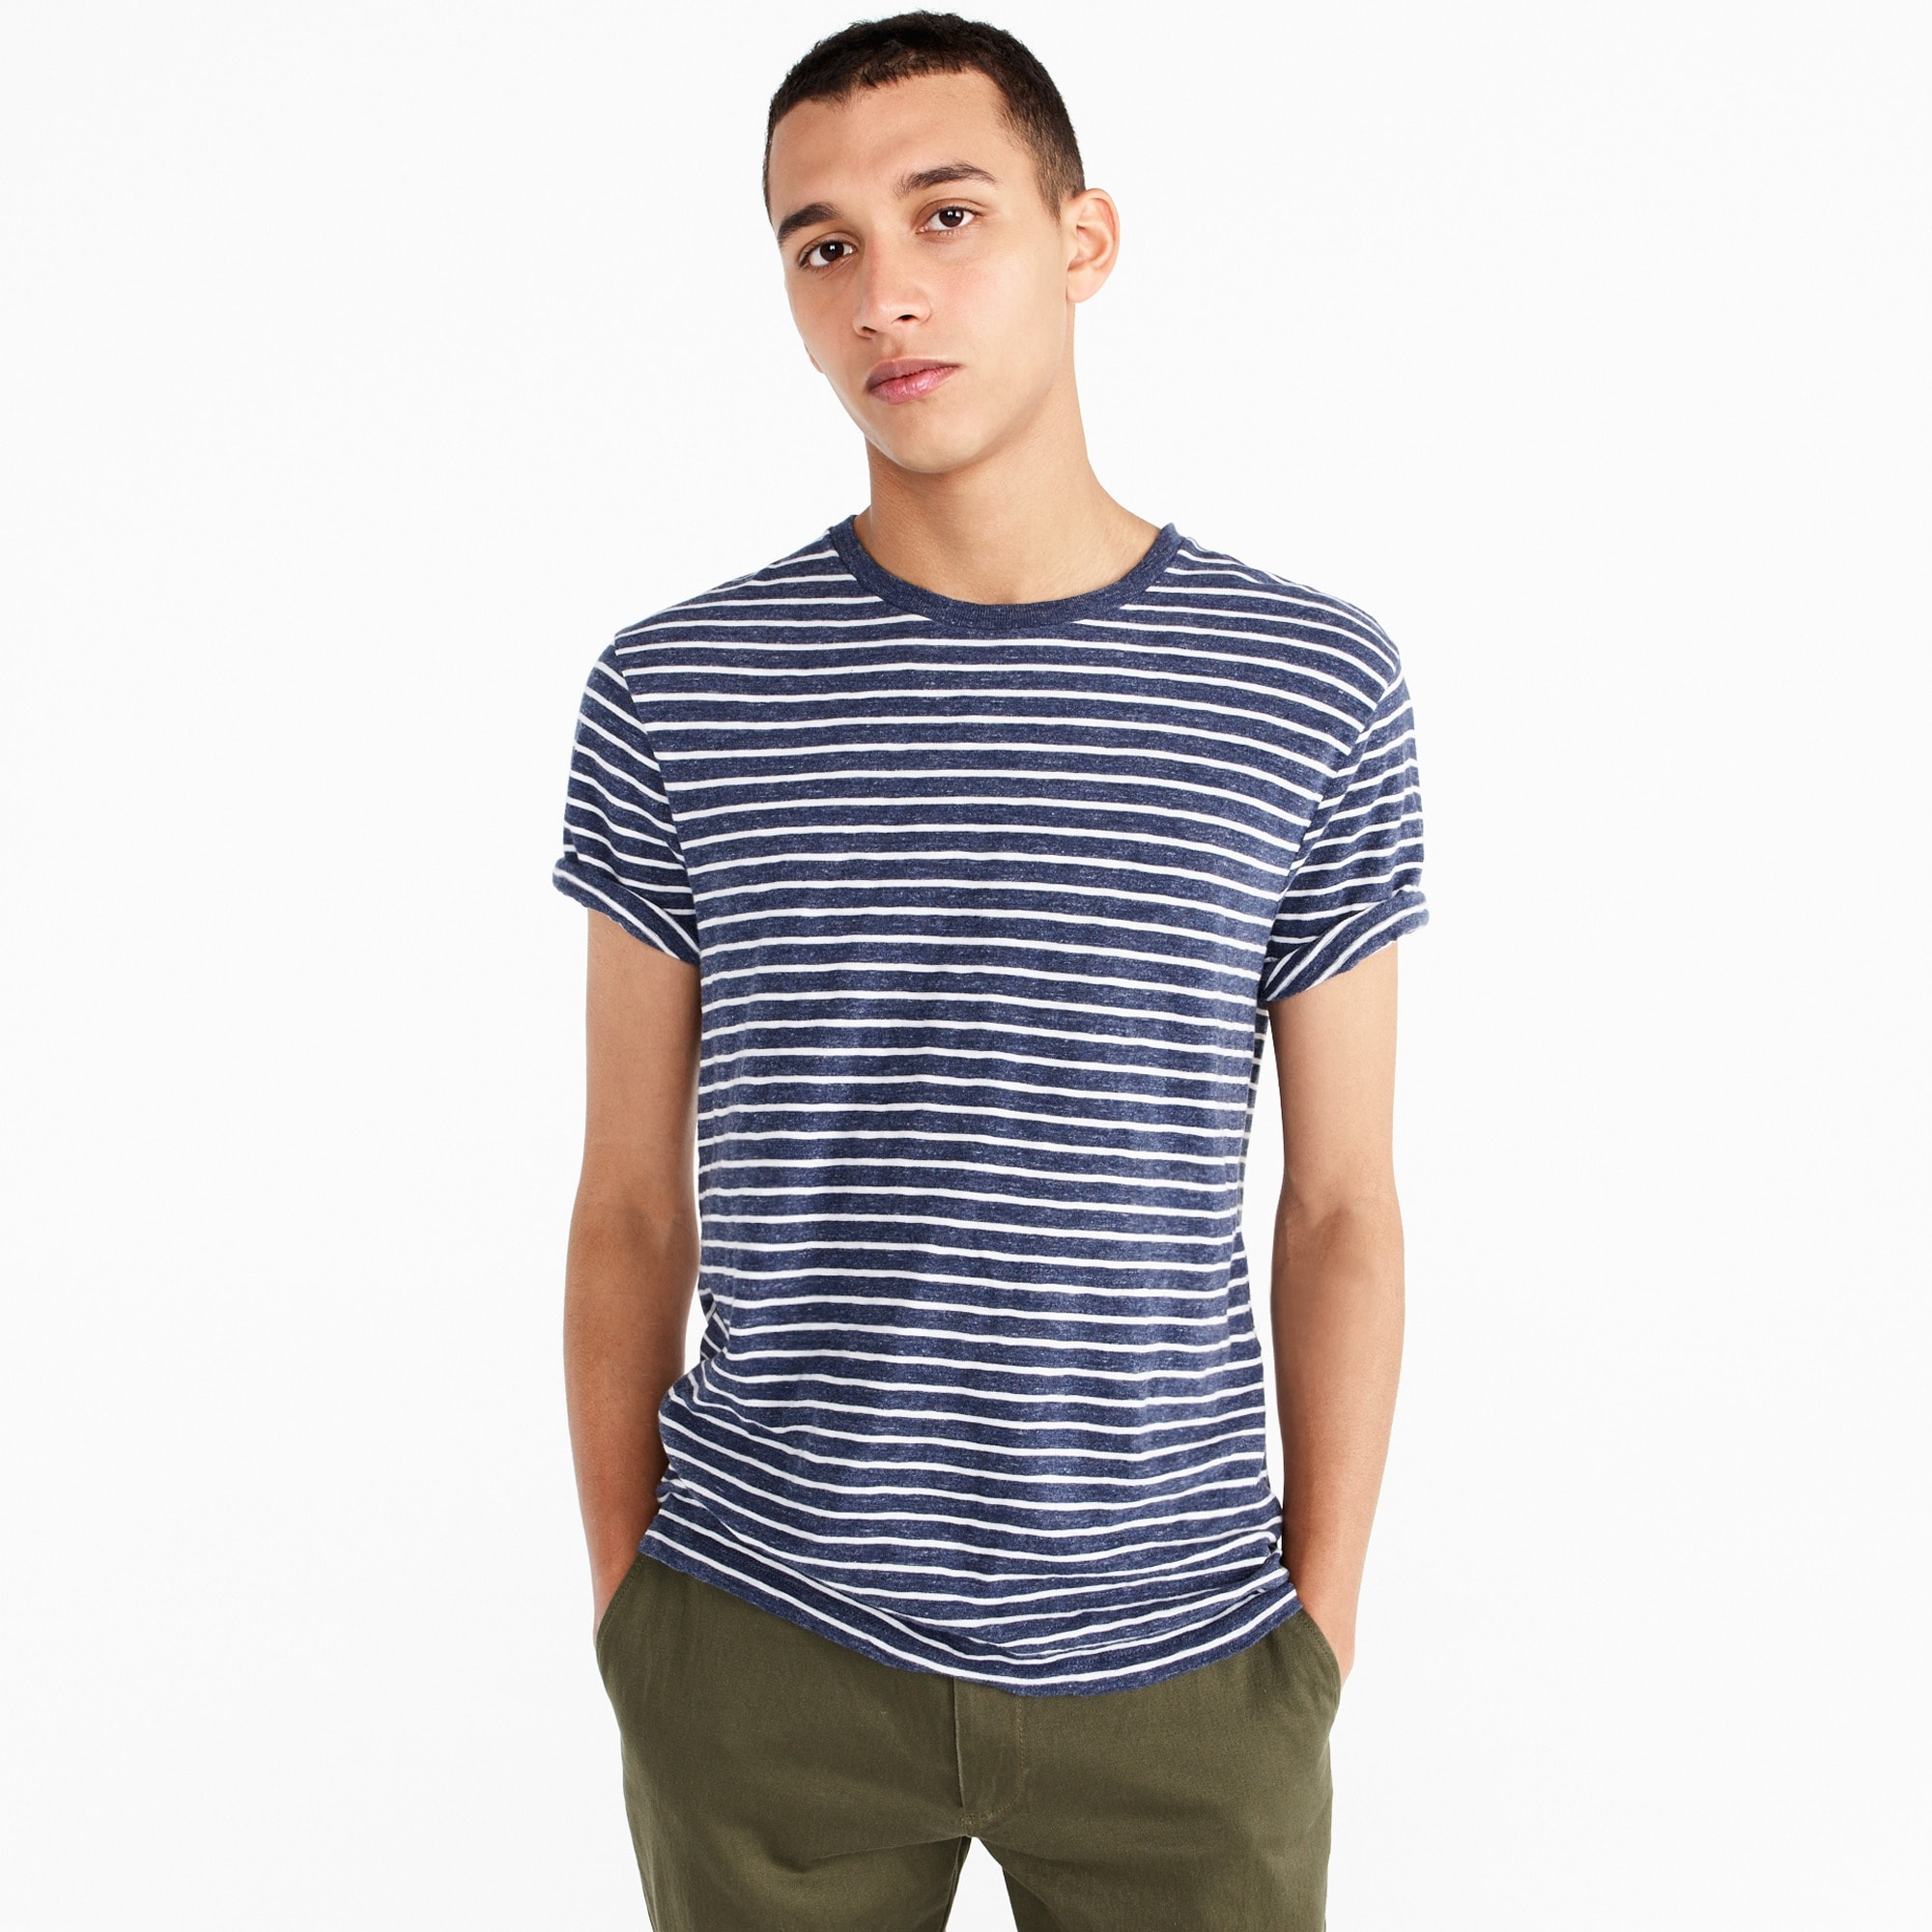 Image 1 for Slub cotton T-shirt in stripe